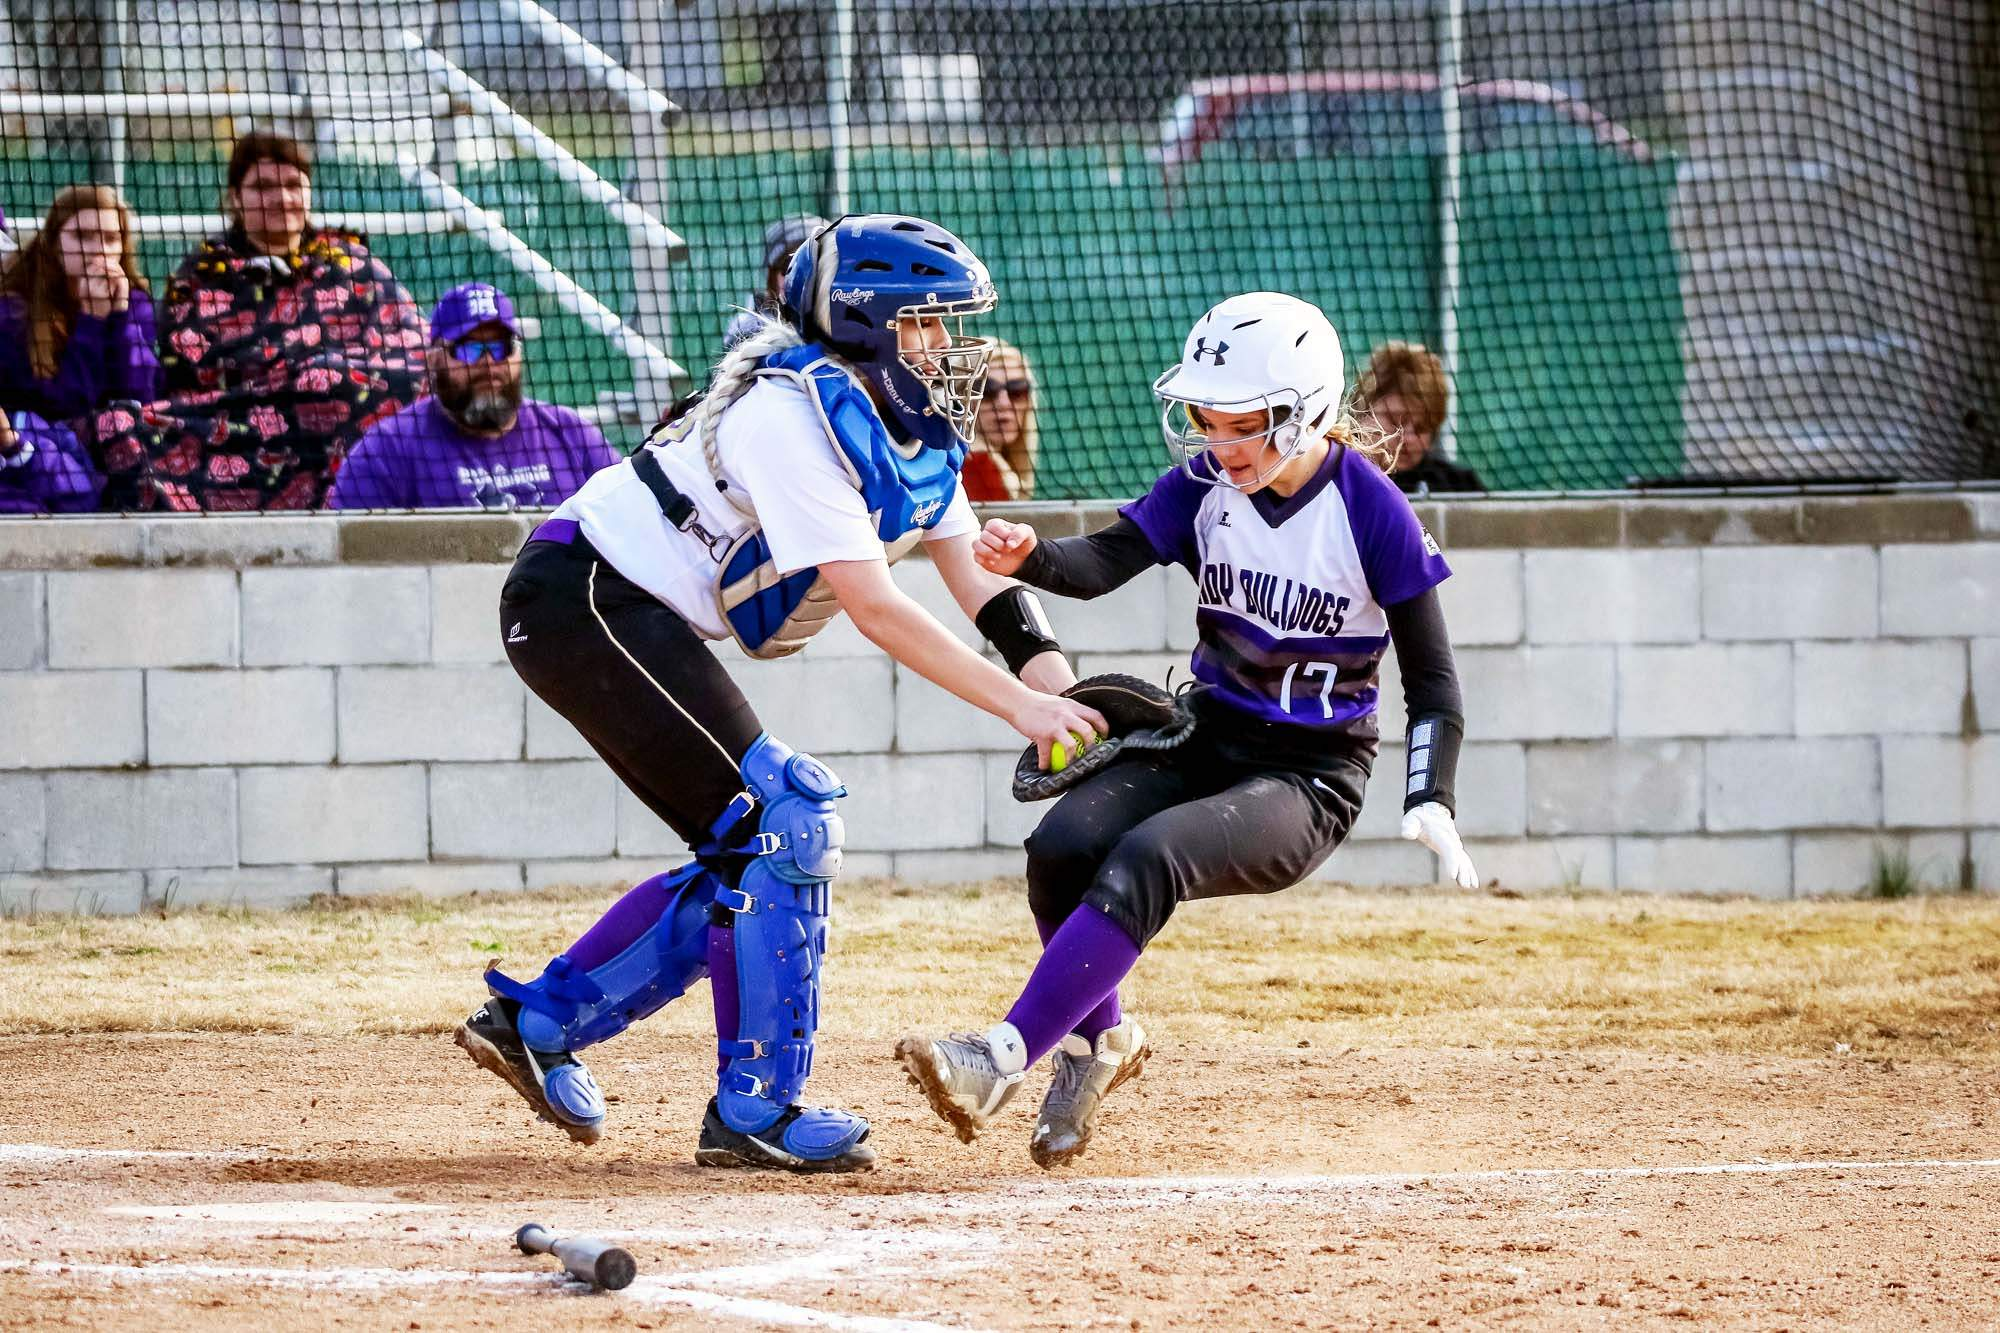 Eldorado catcher Madison Newton tags out Harrisburg runner ViVian Fuerback at home Friday in prep softball action.